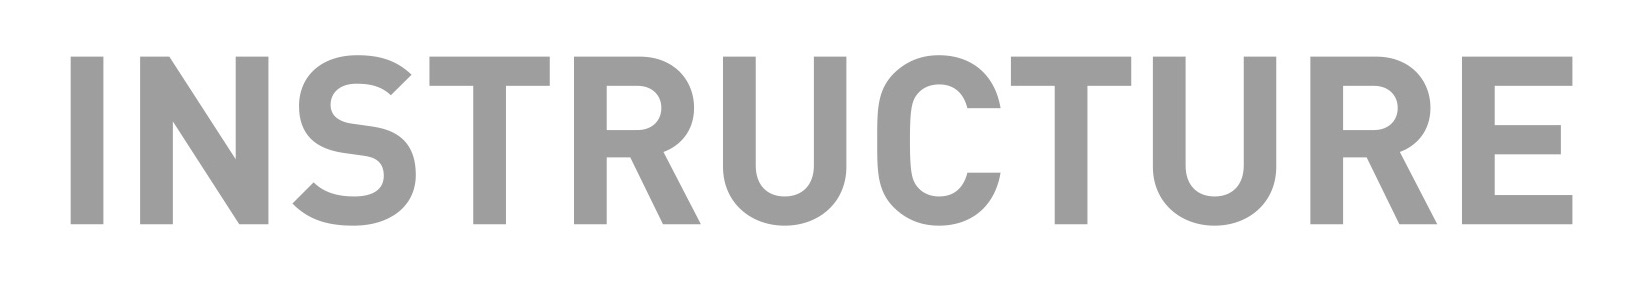 INSTRUCTURE_logo-gray